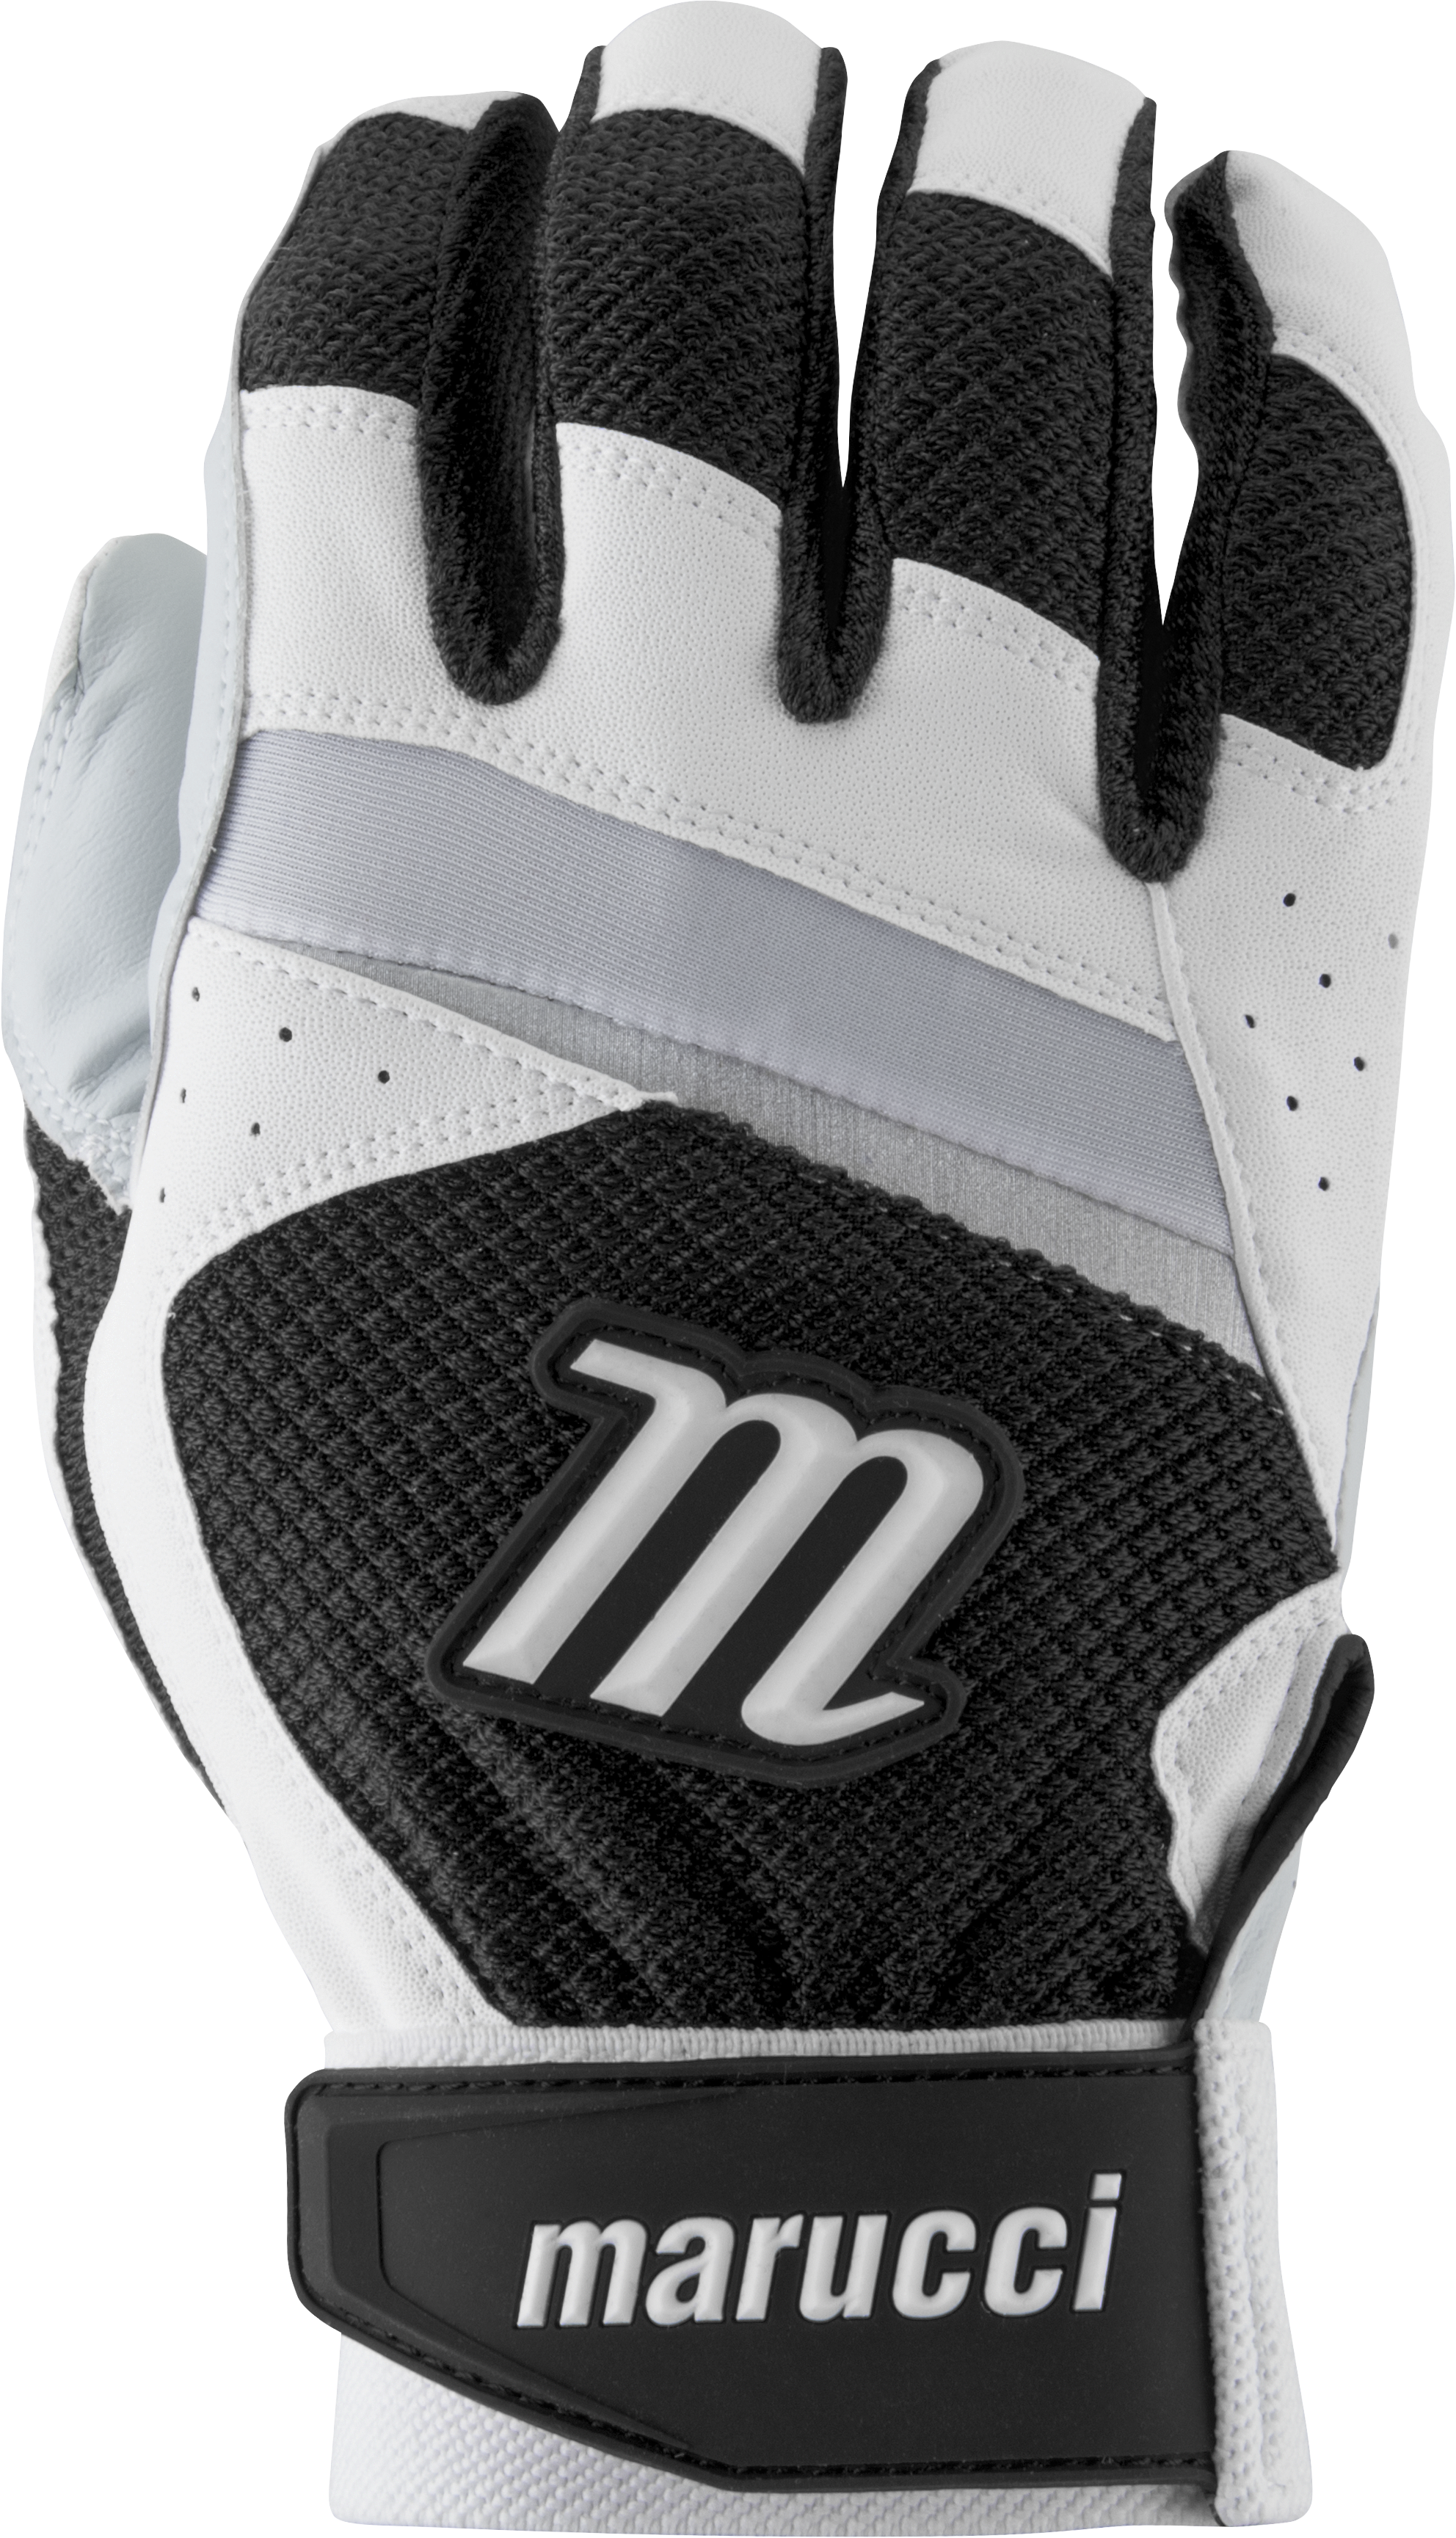 marucci-code-adult-batting-gloves-1-pair-white-black-adult-large MBGCD-WBK-AL Marucci 849817095966 2019 Model MBGCD-W/BK Consistency And Craftsmanship Commitment To Quality And Understanding